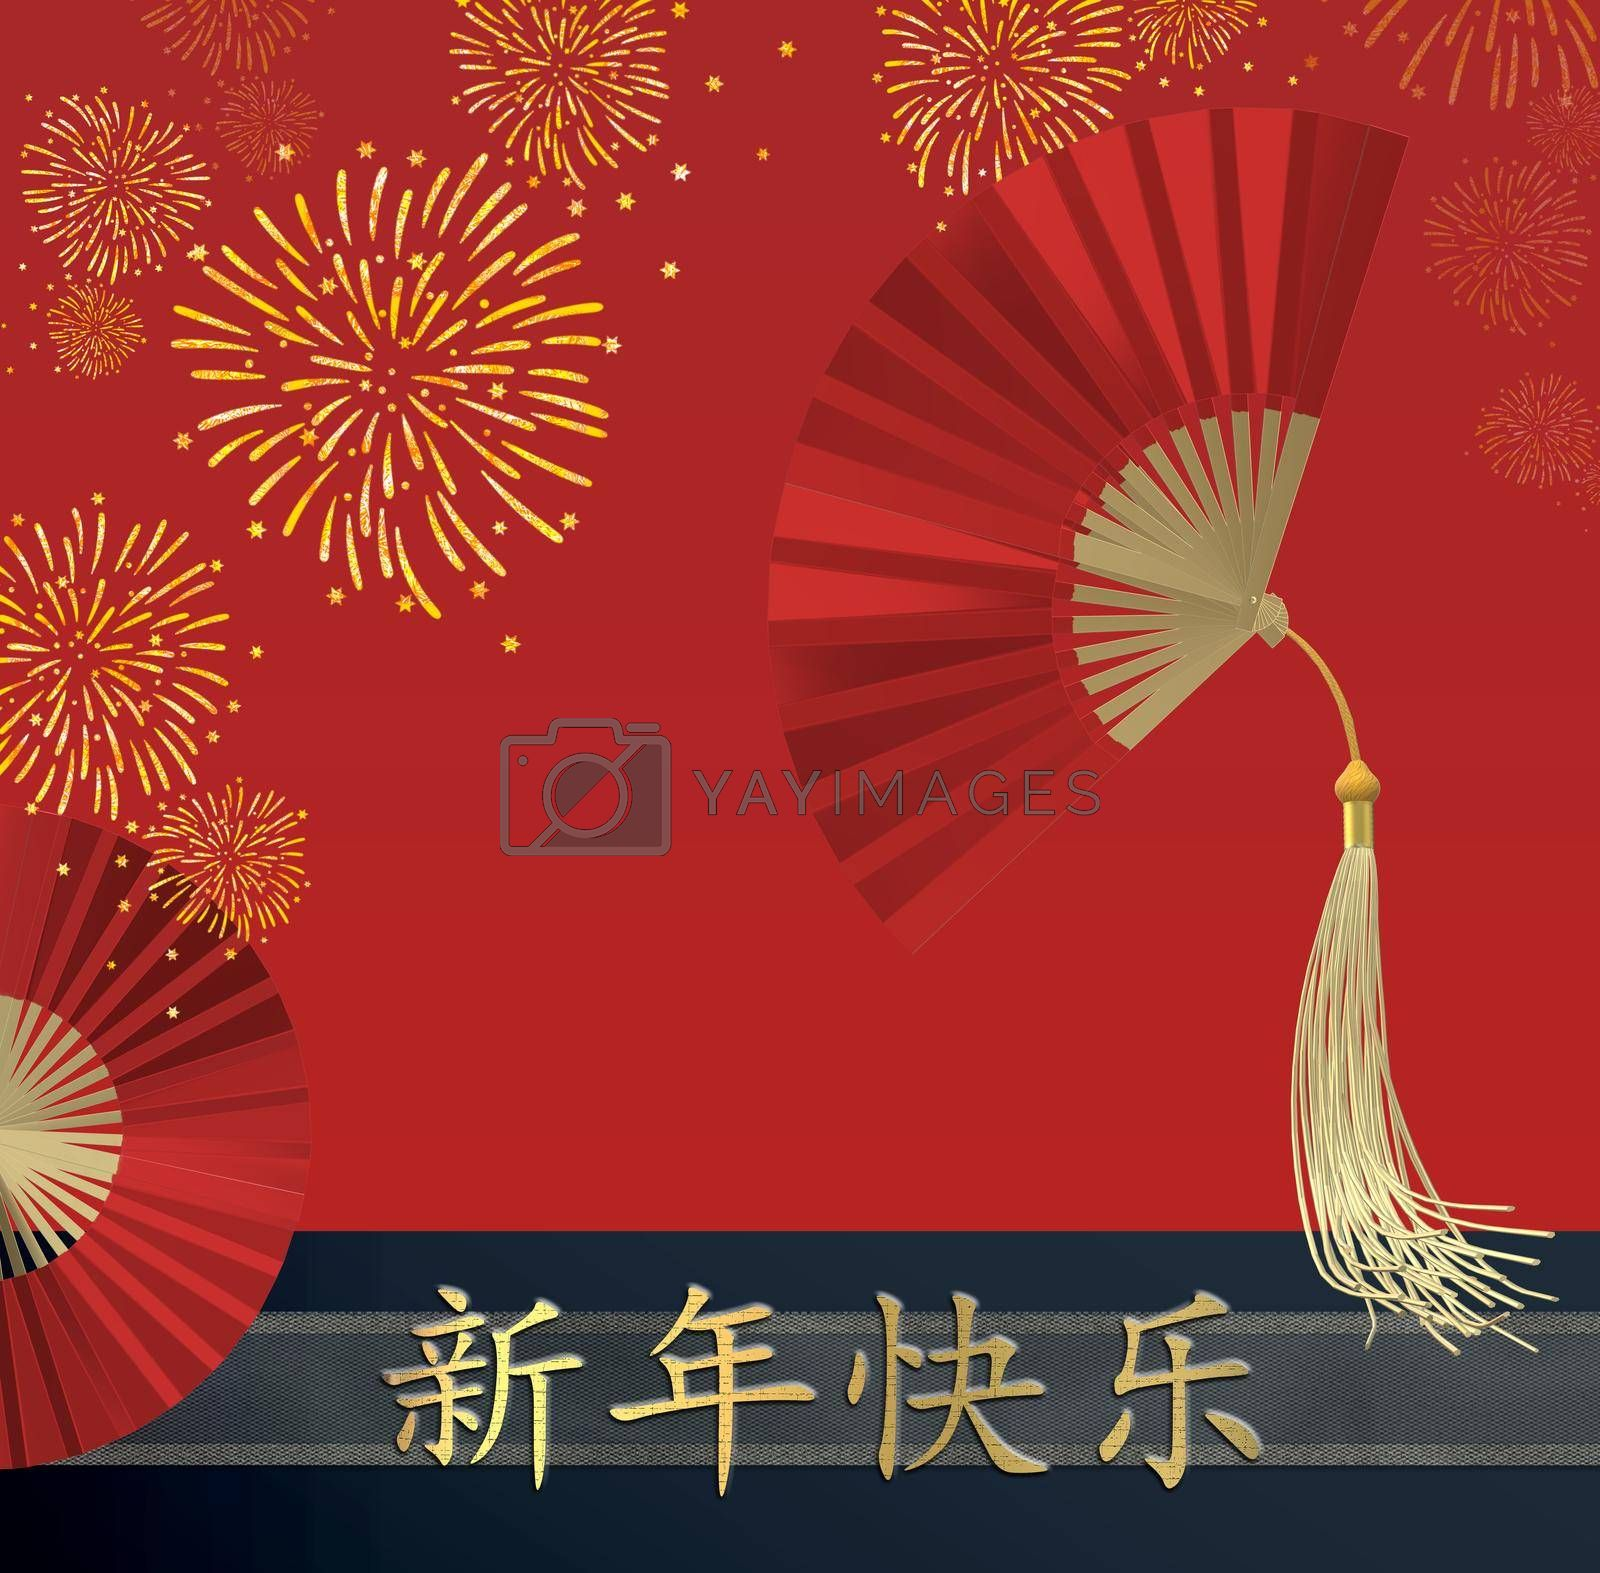 Happy Chinese New Year. Red paper fans, fireworks over blue background. Traditional Holiday Lunar New Year. Gold text Chinese translation Happy New Year. 3D illustration